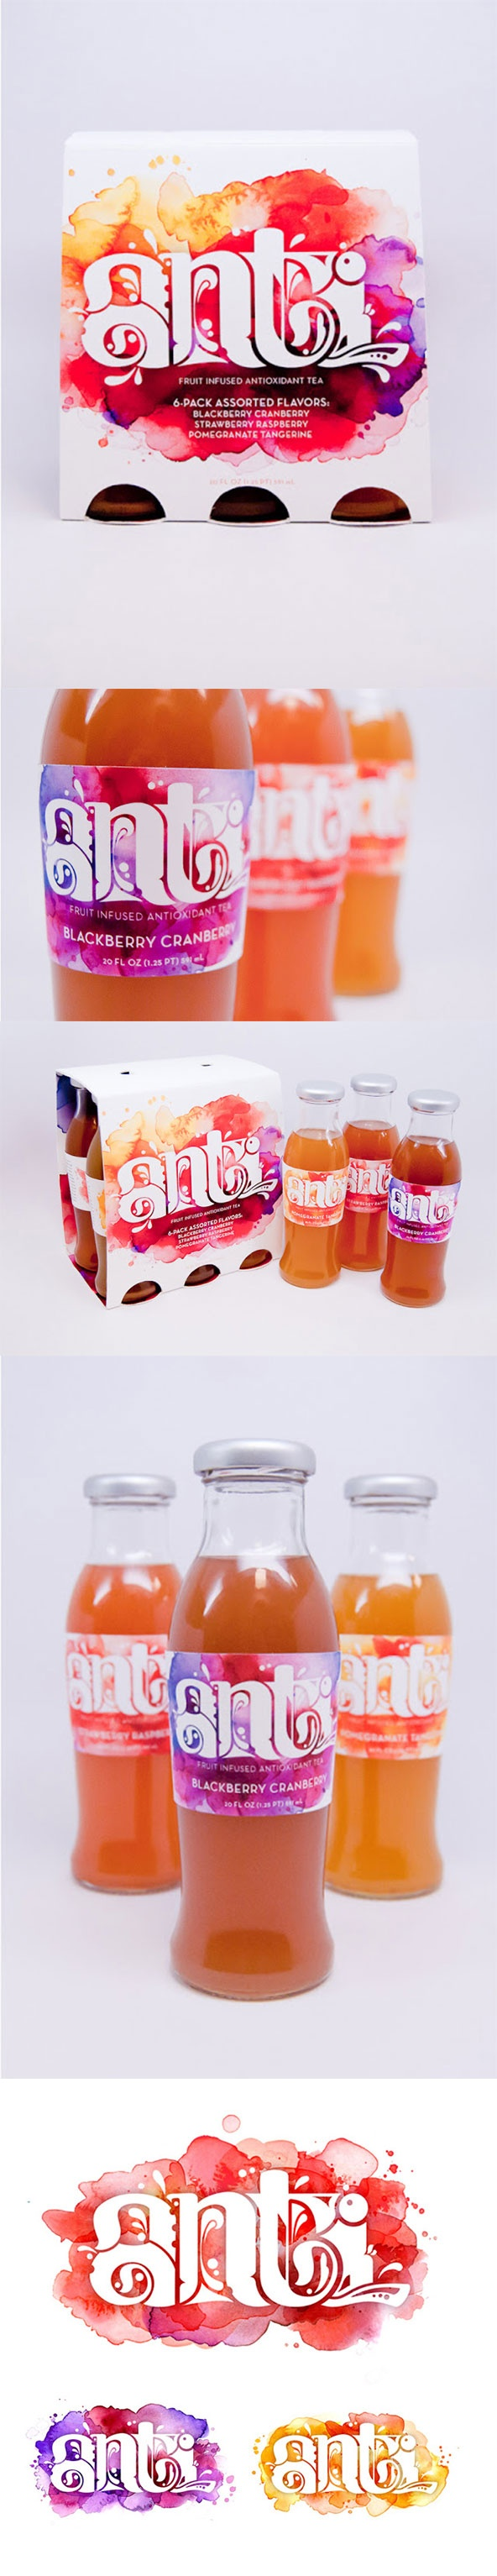 Packaging of the World: Creative Package Design Archive and Gallery: Anti (Student Work) --CB--